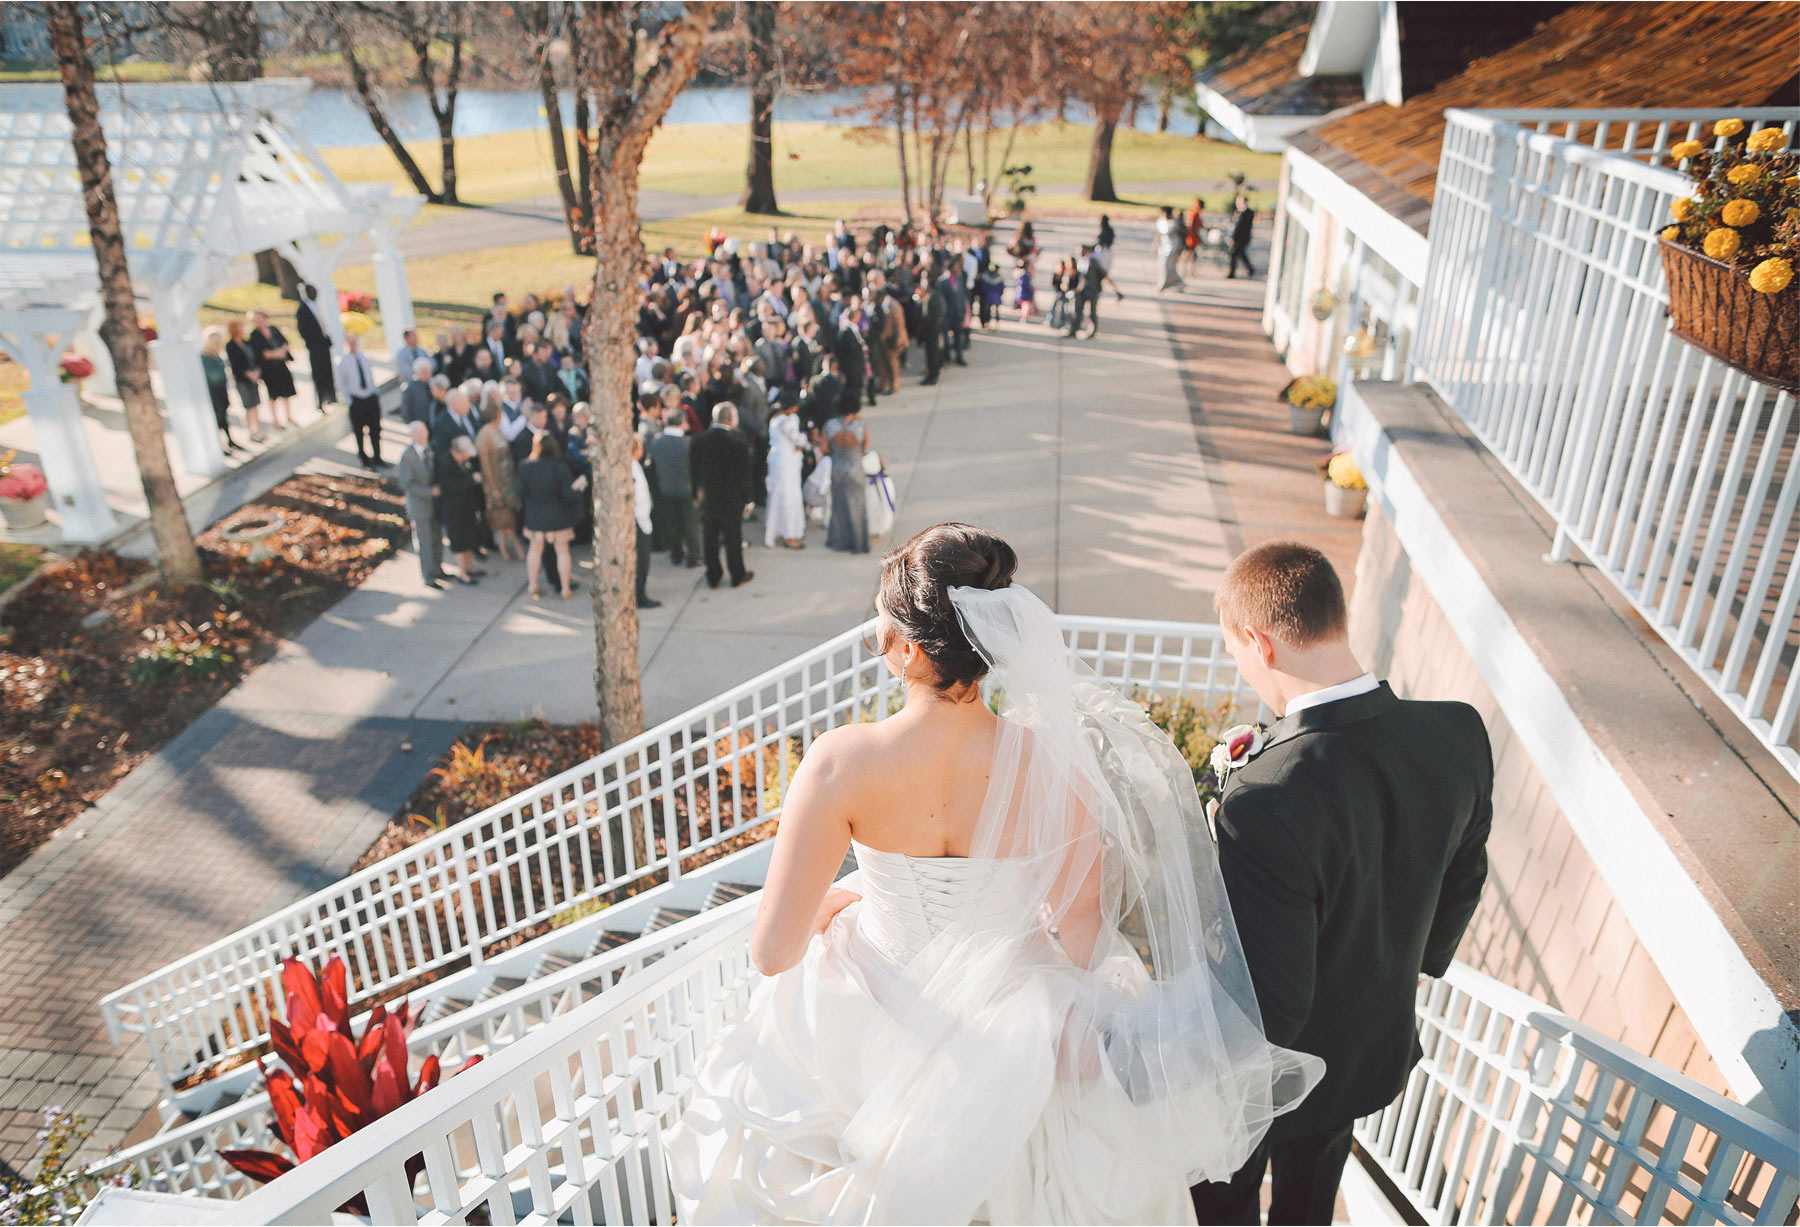 14-Eden-Prairie-Minnesota-Wedding-Photographer-by-Andrew-Vick-Photography-Fall-Autumn-Bearpath-Golf-Country-Club-Bride-Groom-Guests-Vintage-Brittany-and-Ryan.jpg